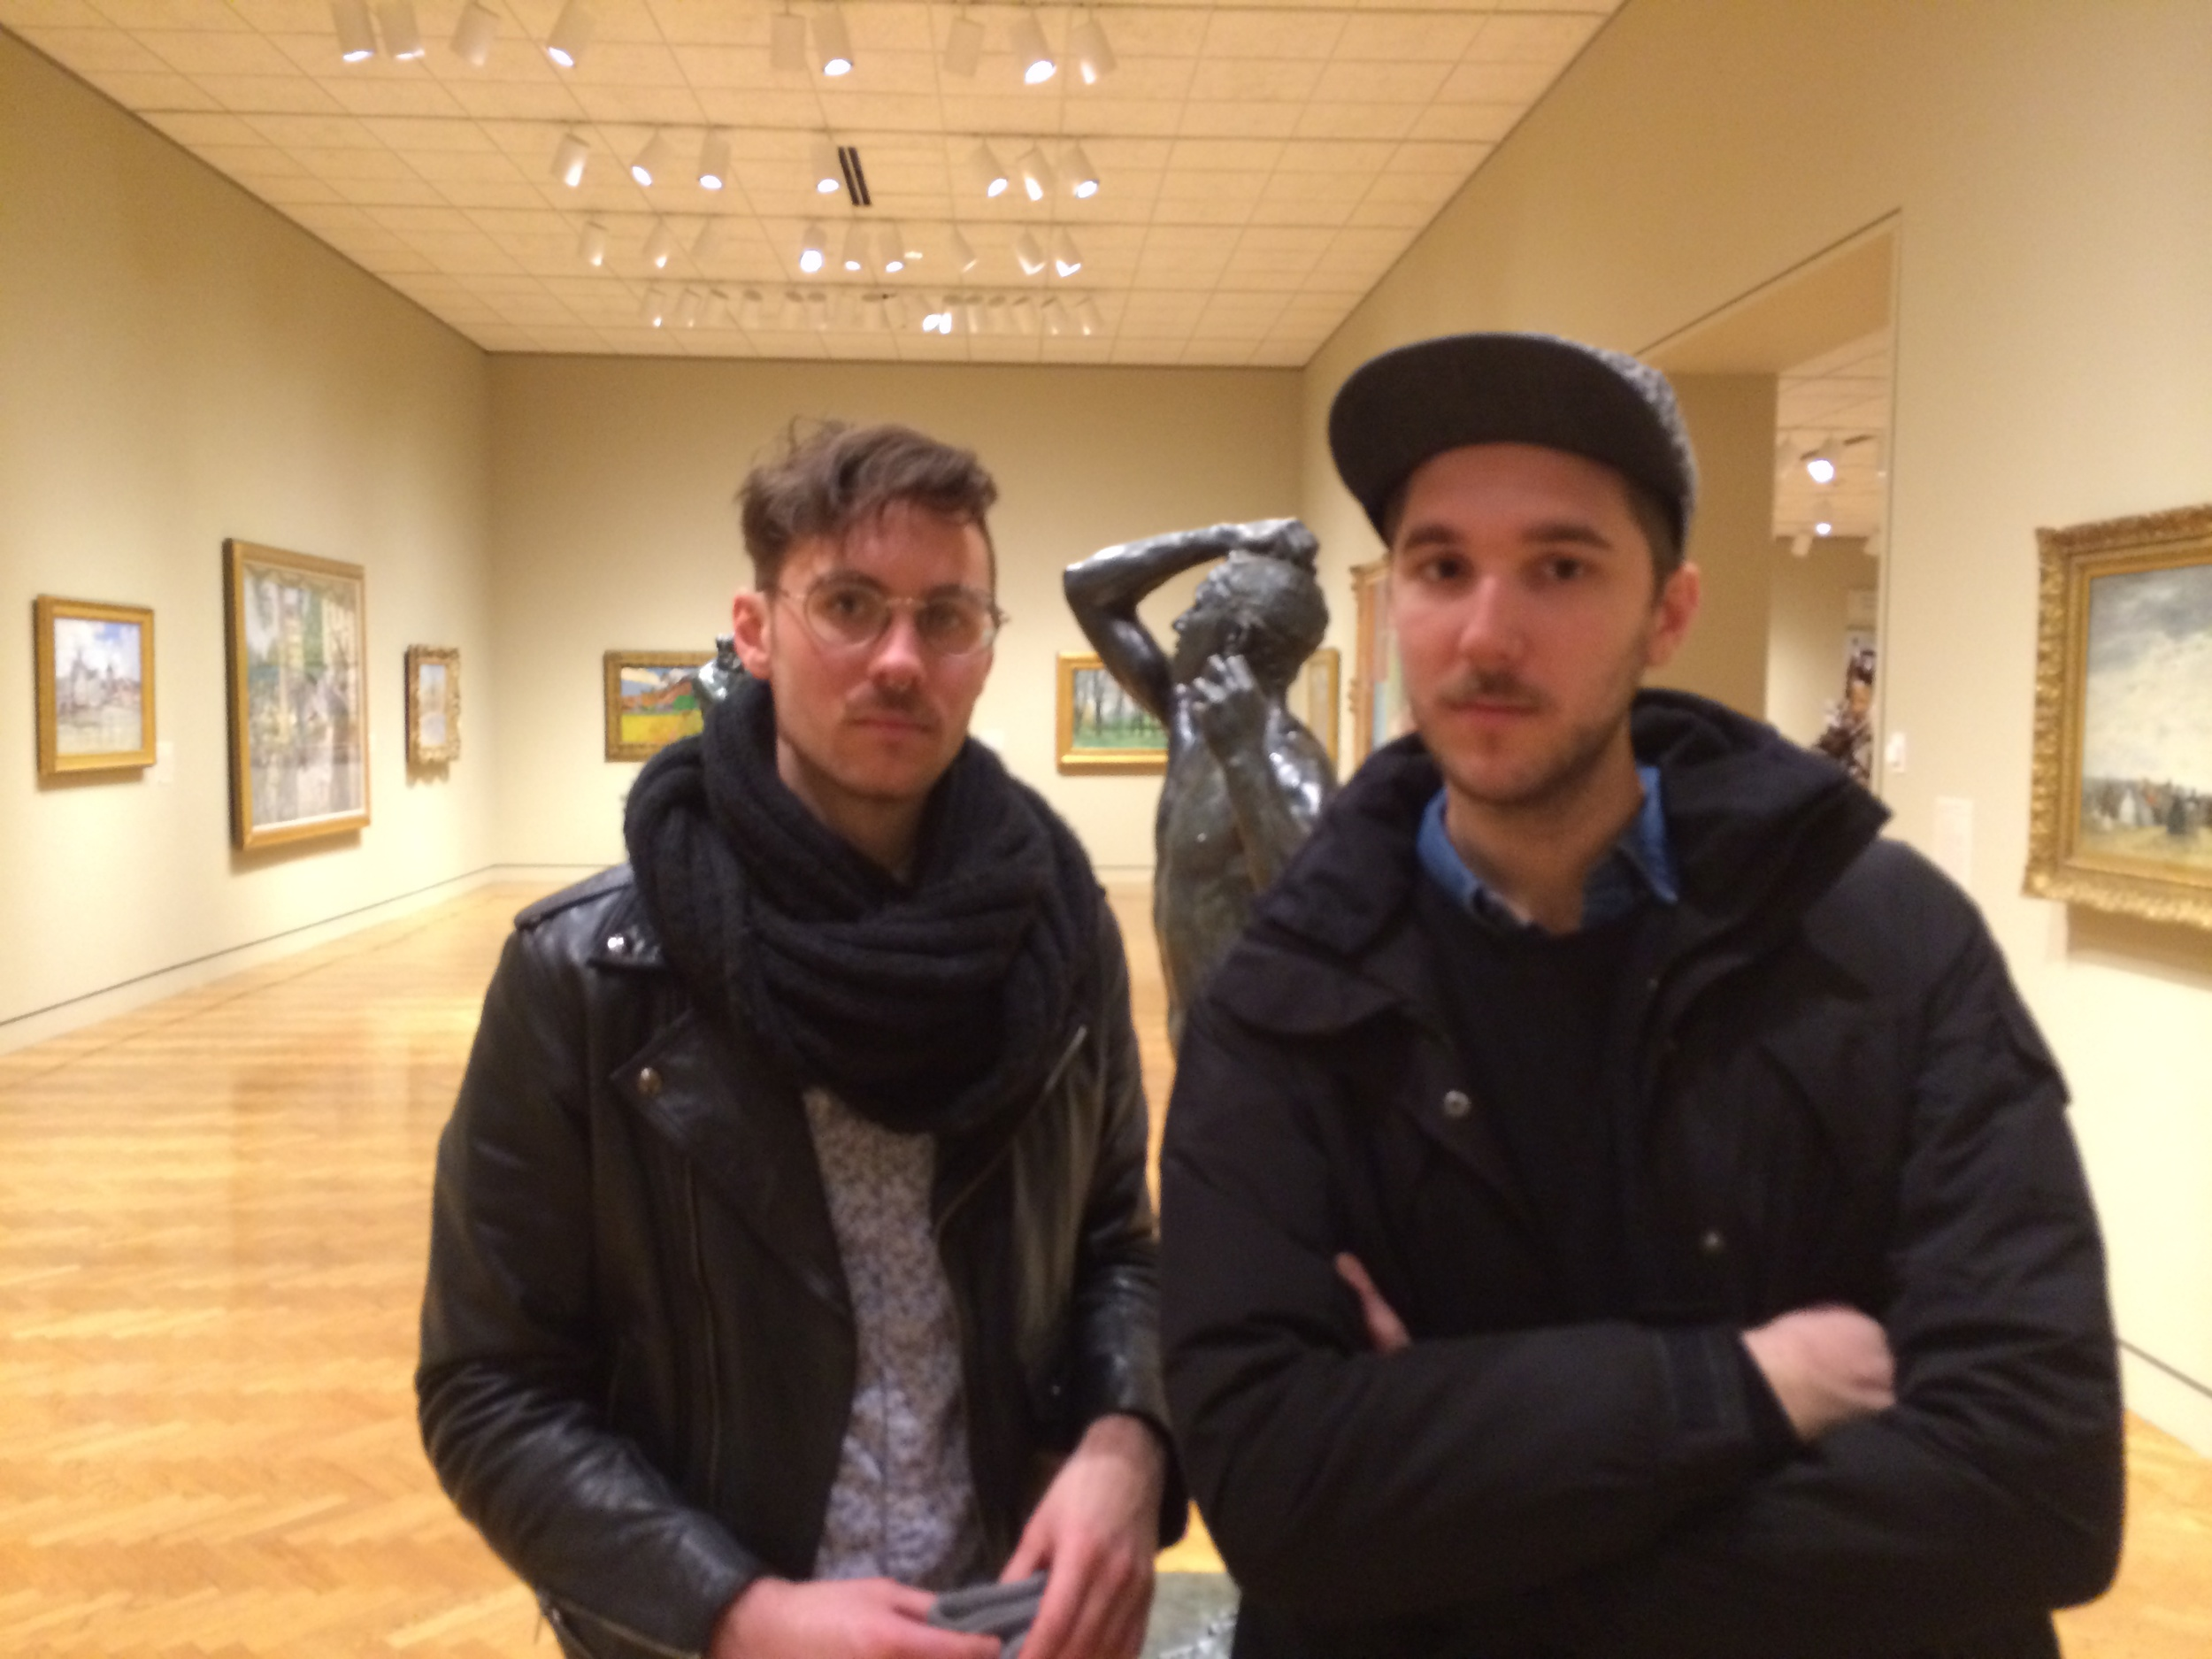 Cameron McKee (left) and Shane Duncan (right), my Artist Date cohorts at the MIA